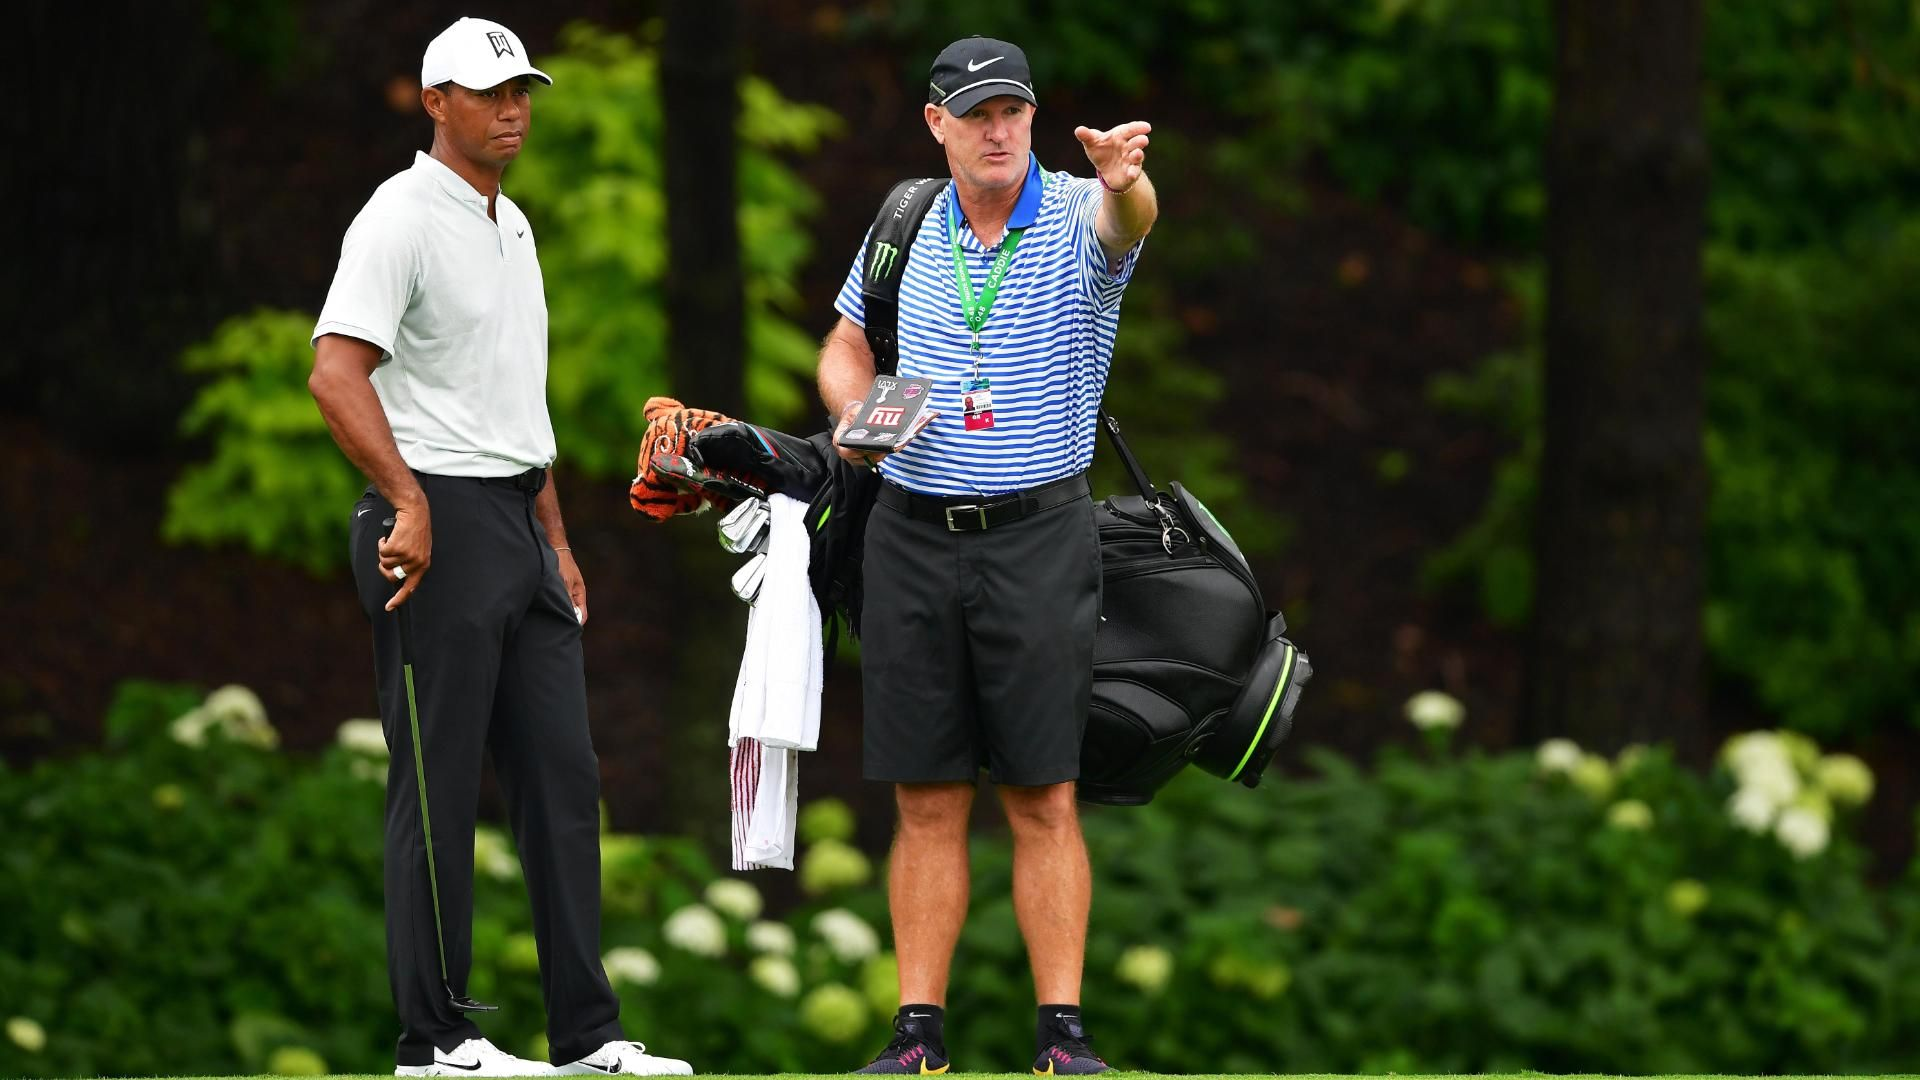 Tiger's caddie explains altercation with spectator